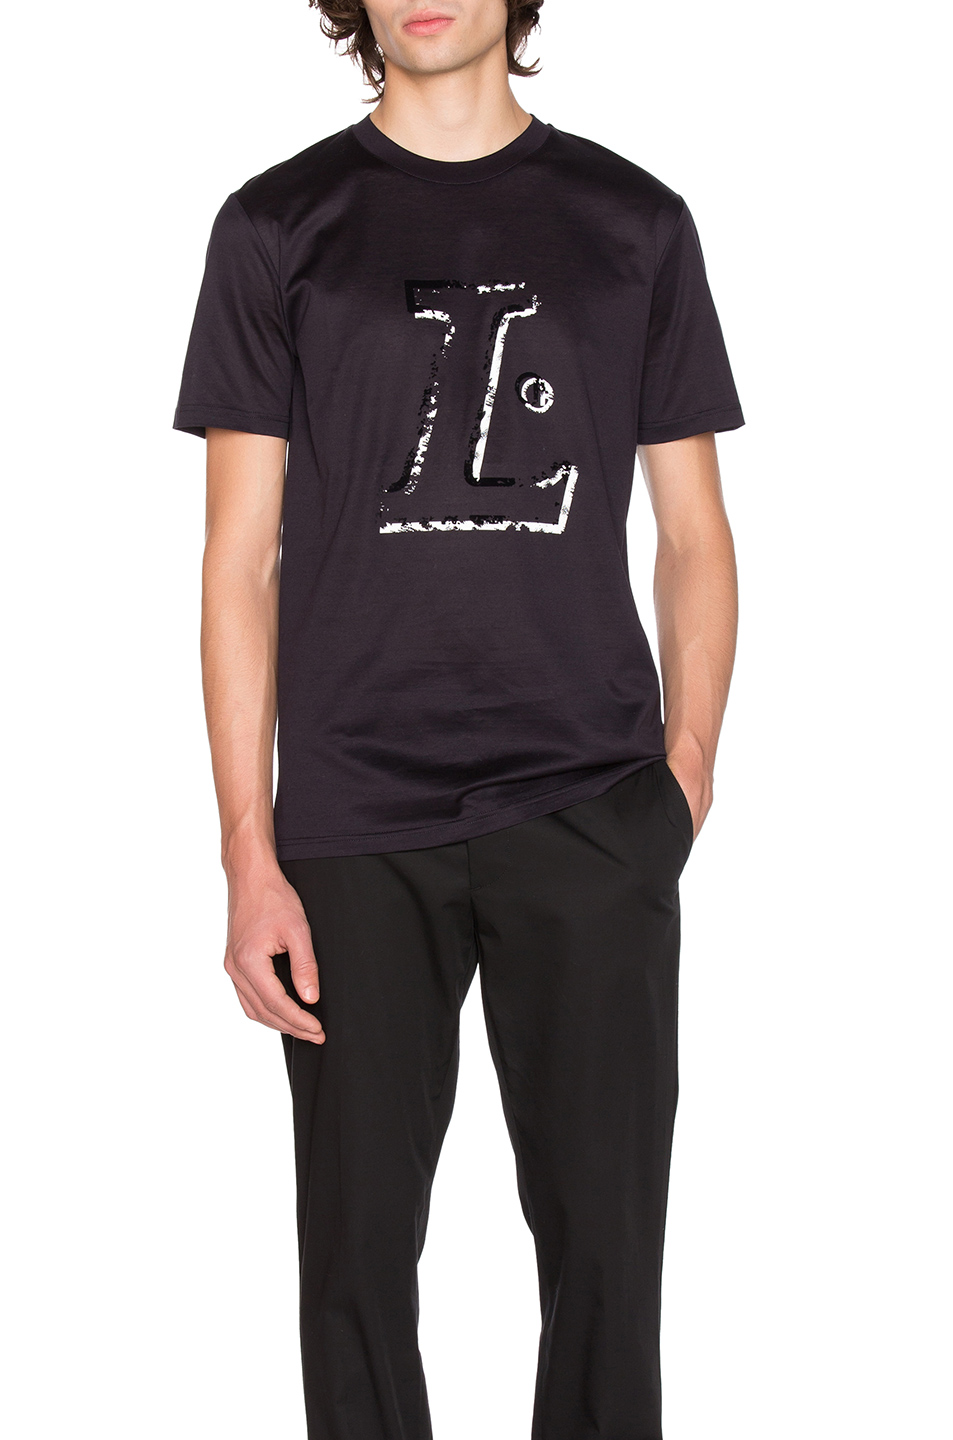 Lanvin L Placed Print Tee in Black